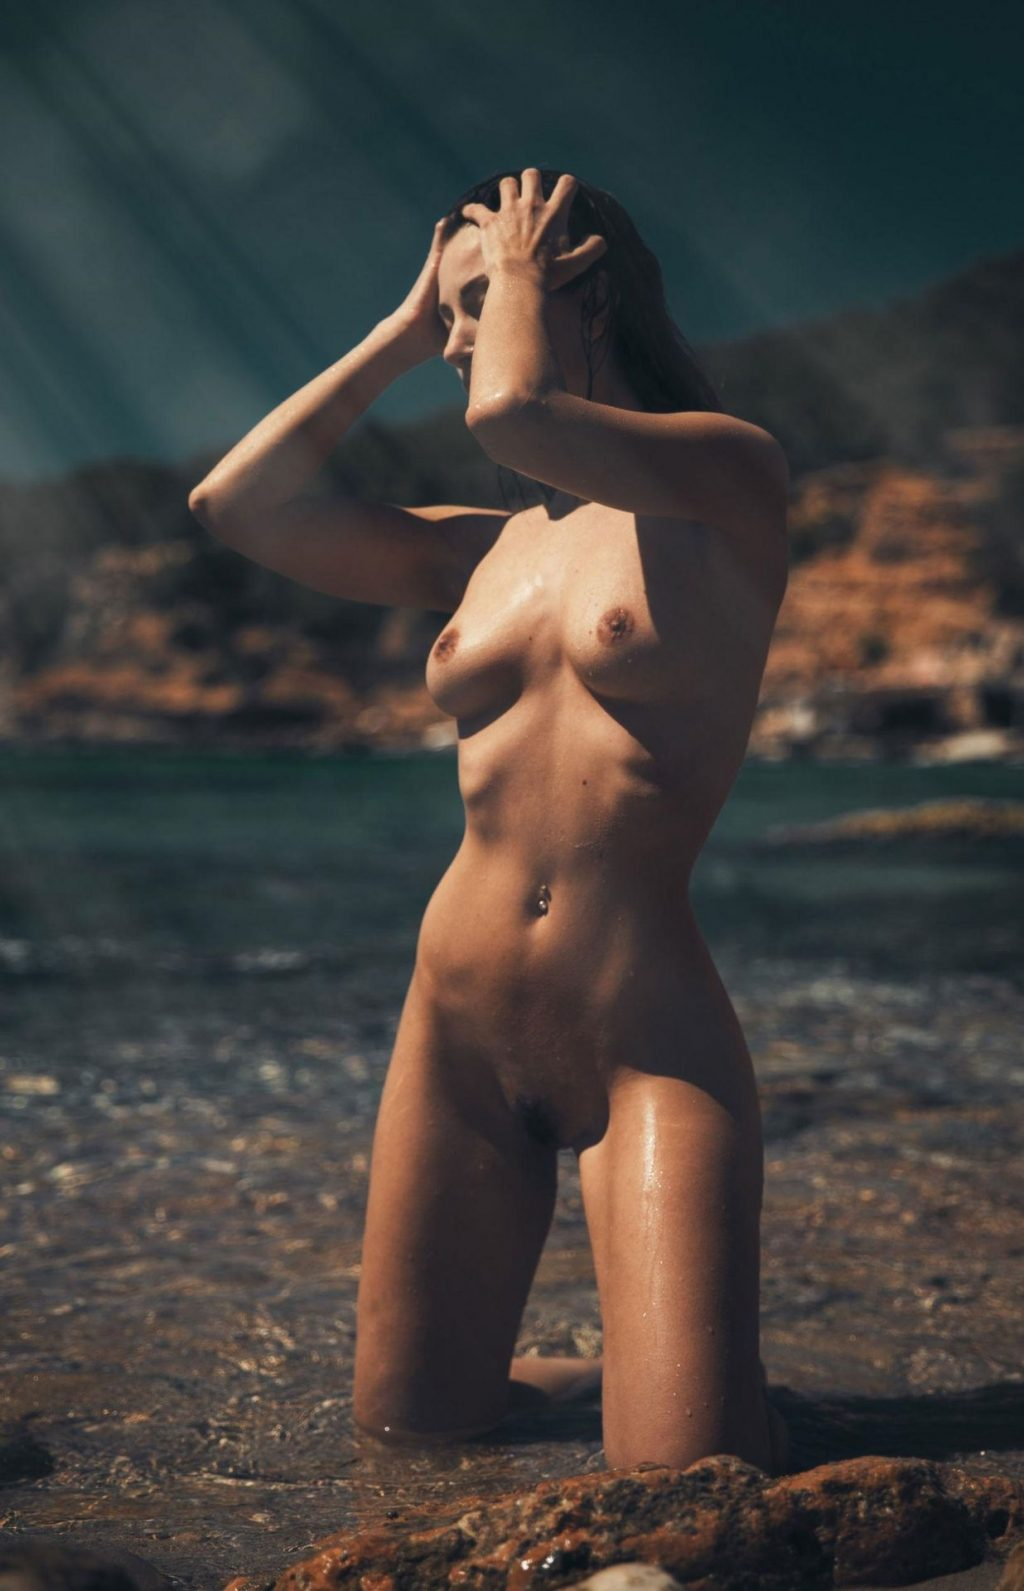 Miluniel Shows Off Her Nude Tanned Body (13 Photos + Video)